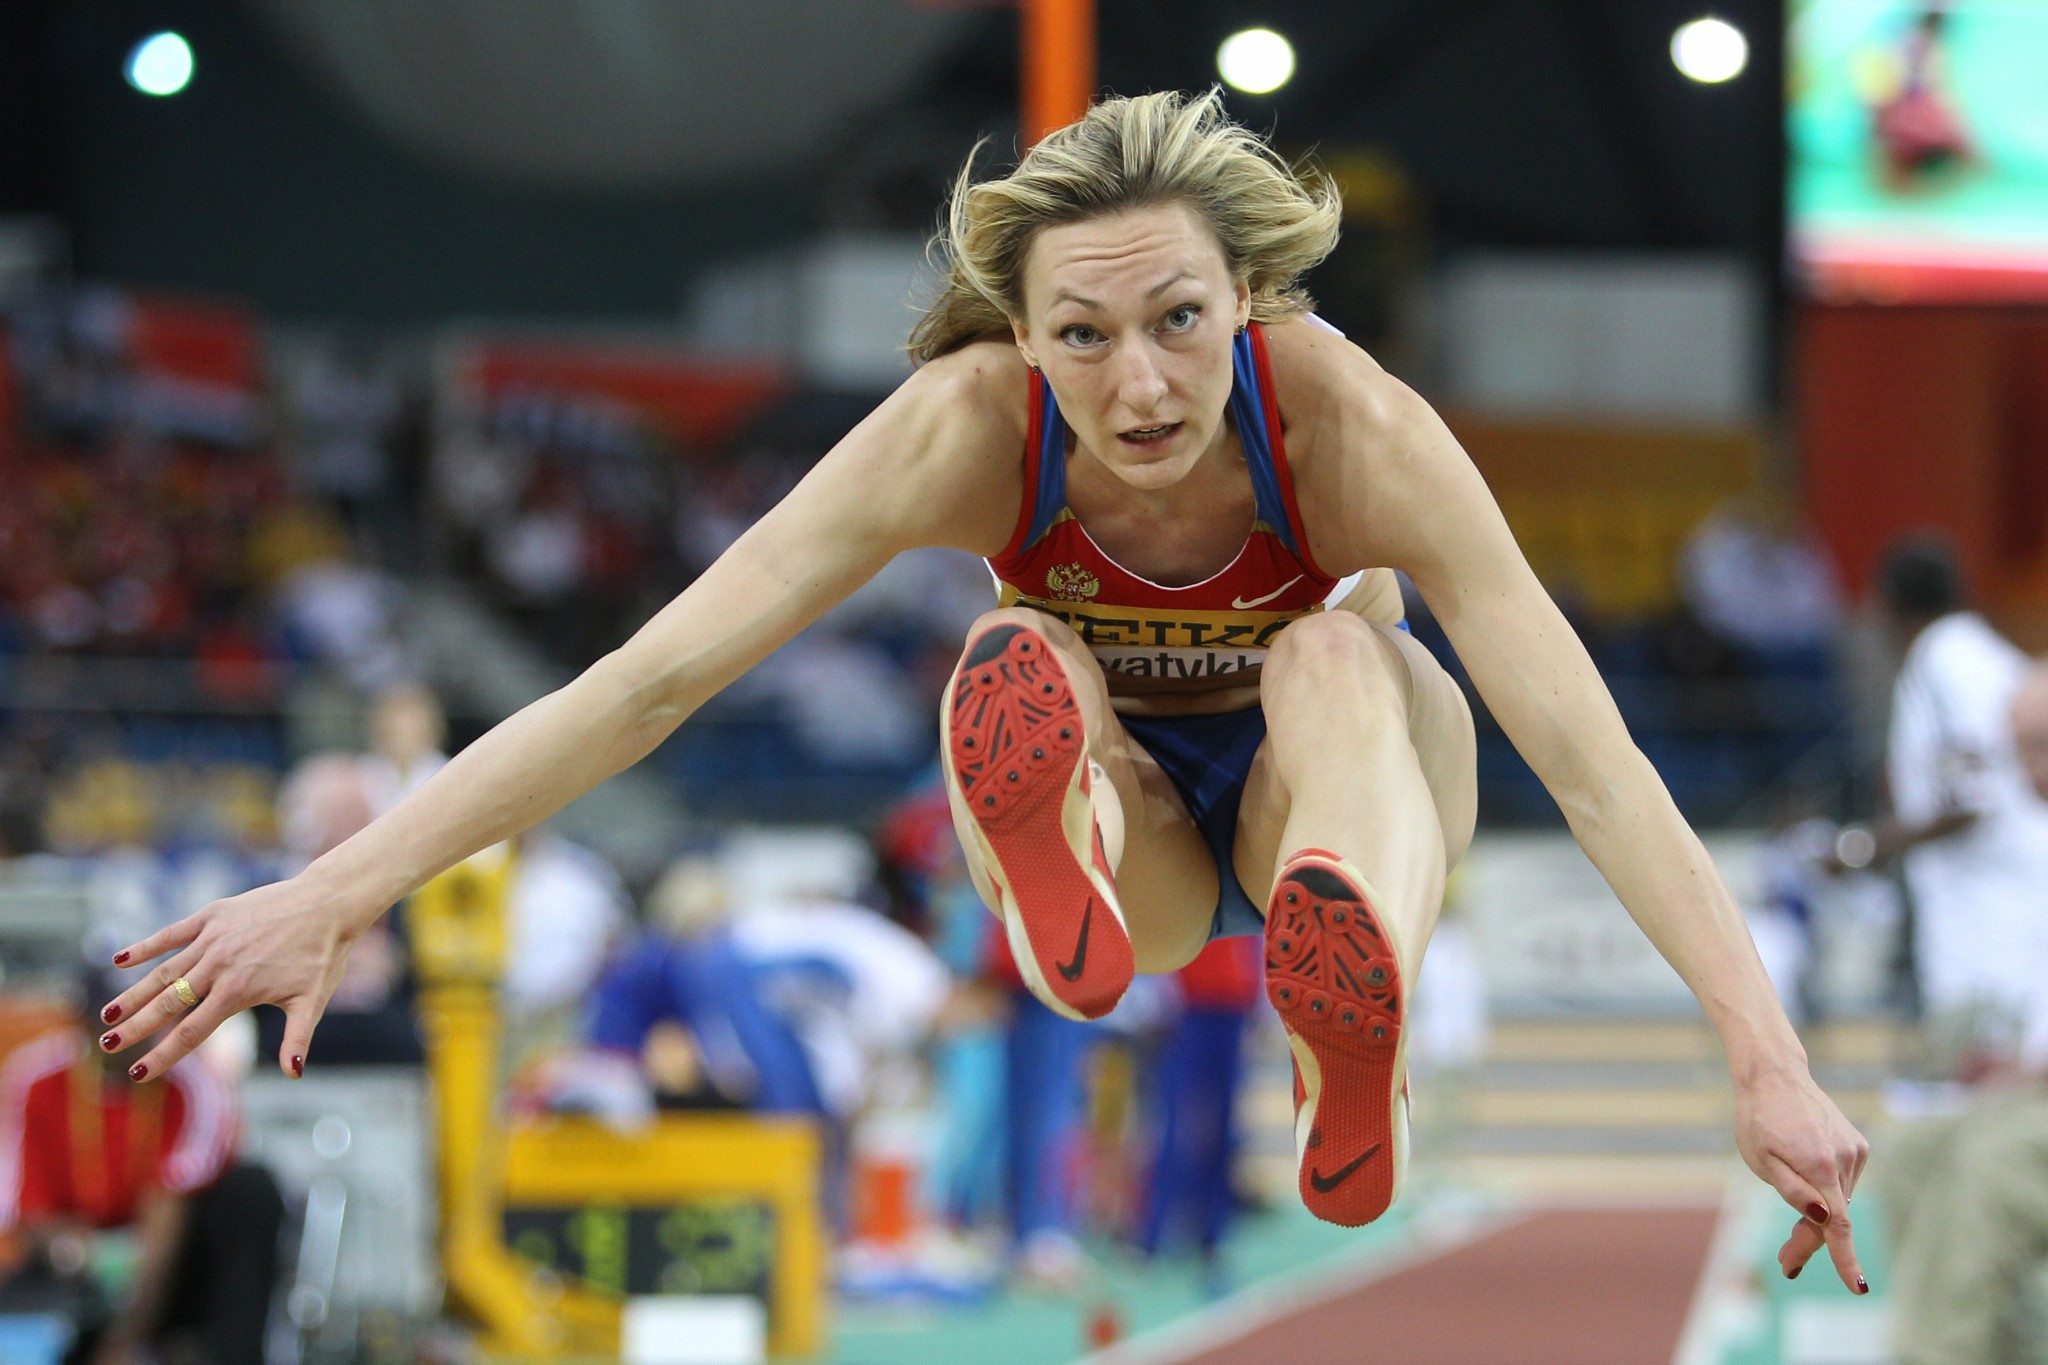 Anna Pyatykh has had her result from the 2007 World Championships annulled as a result of the CAS decision ©Getty Images